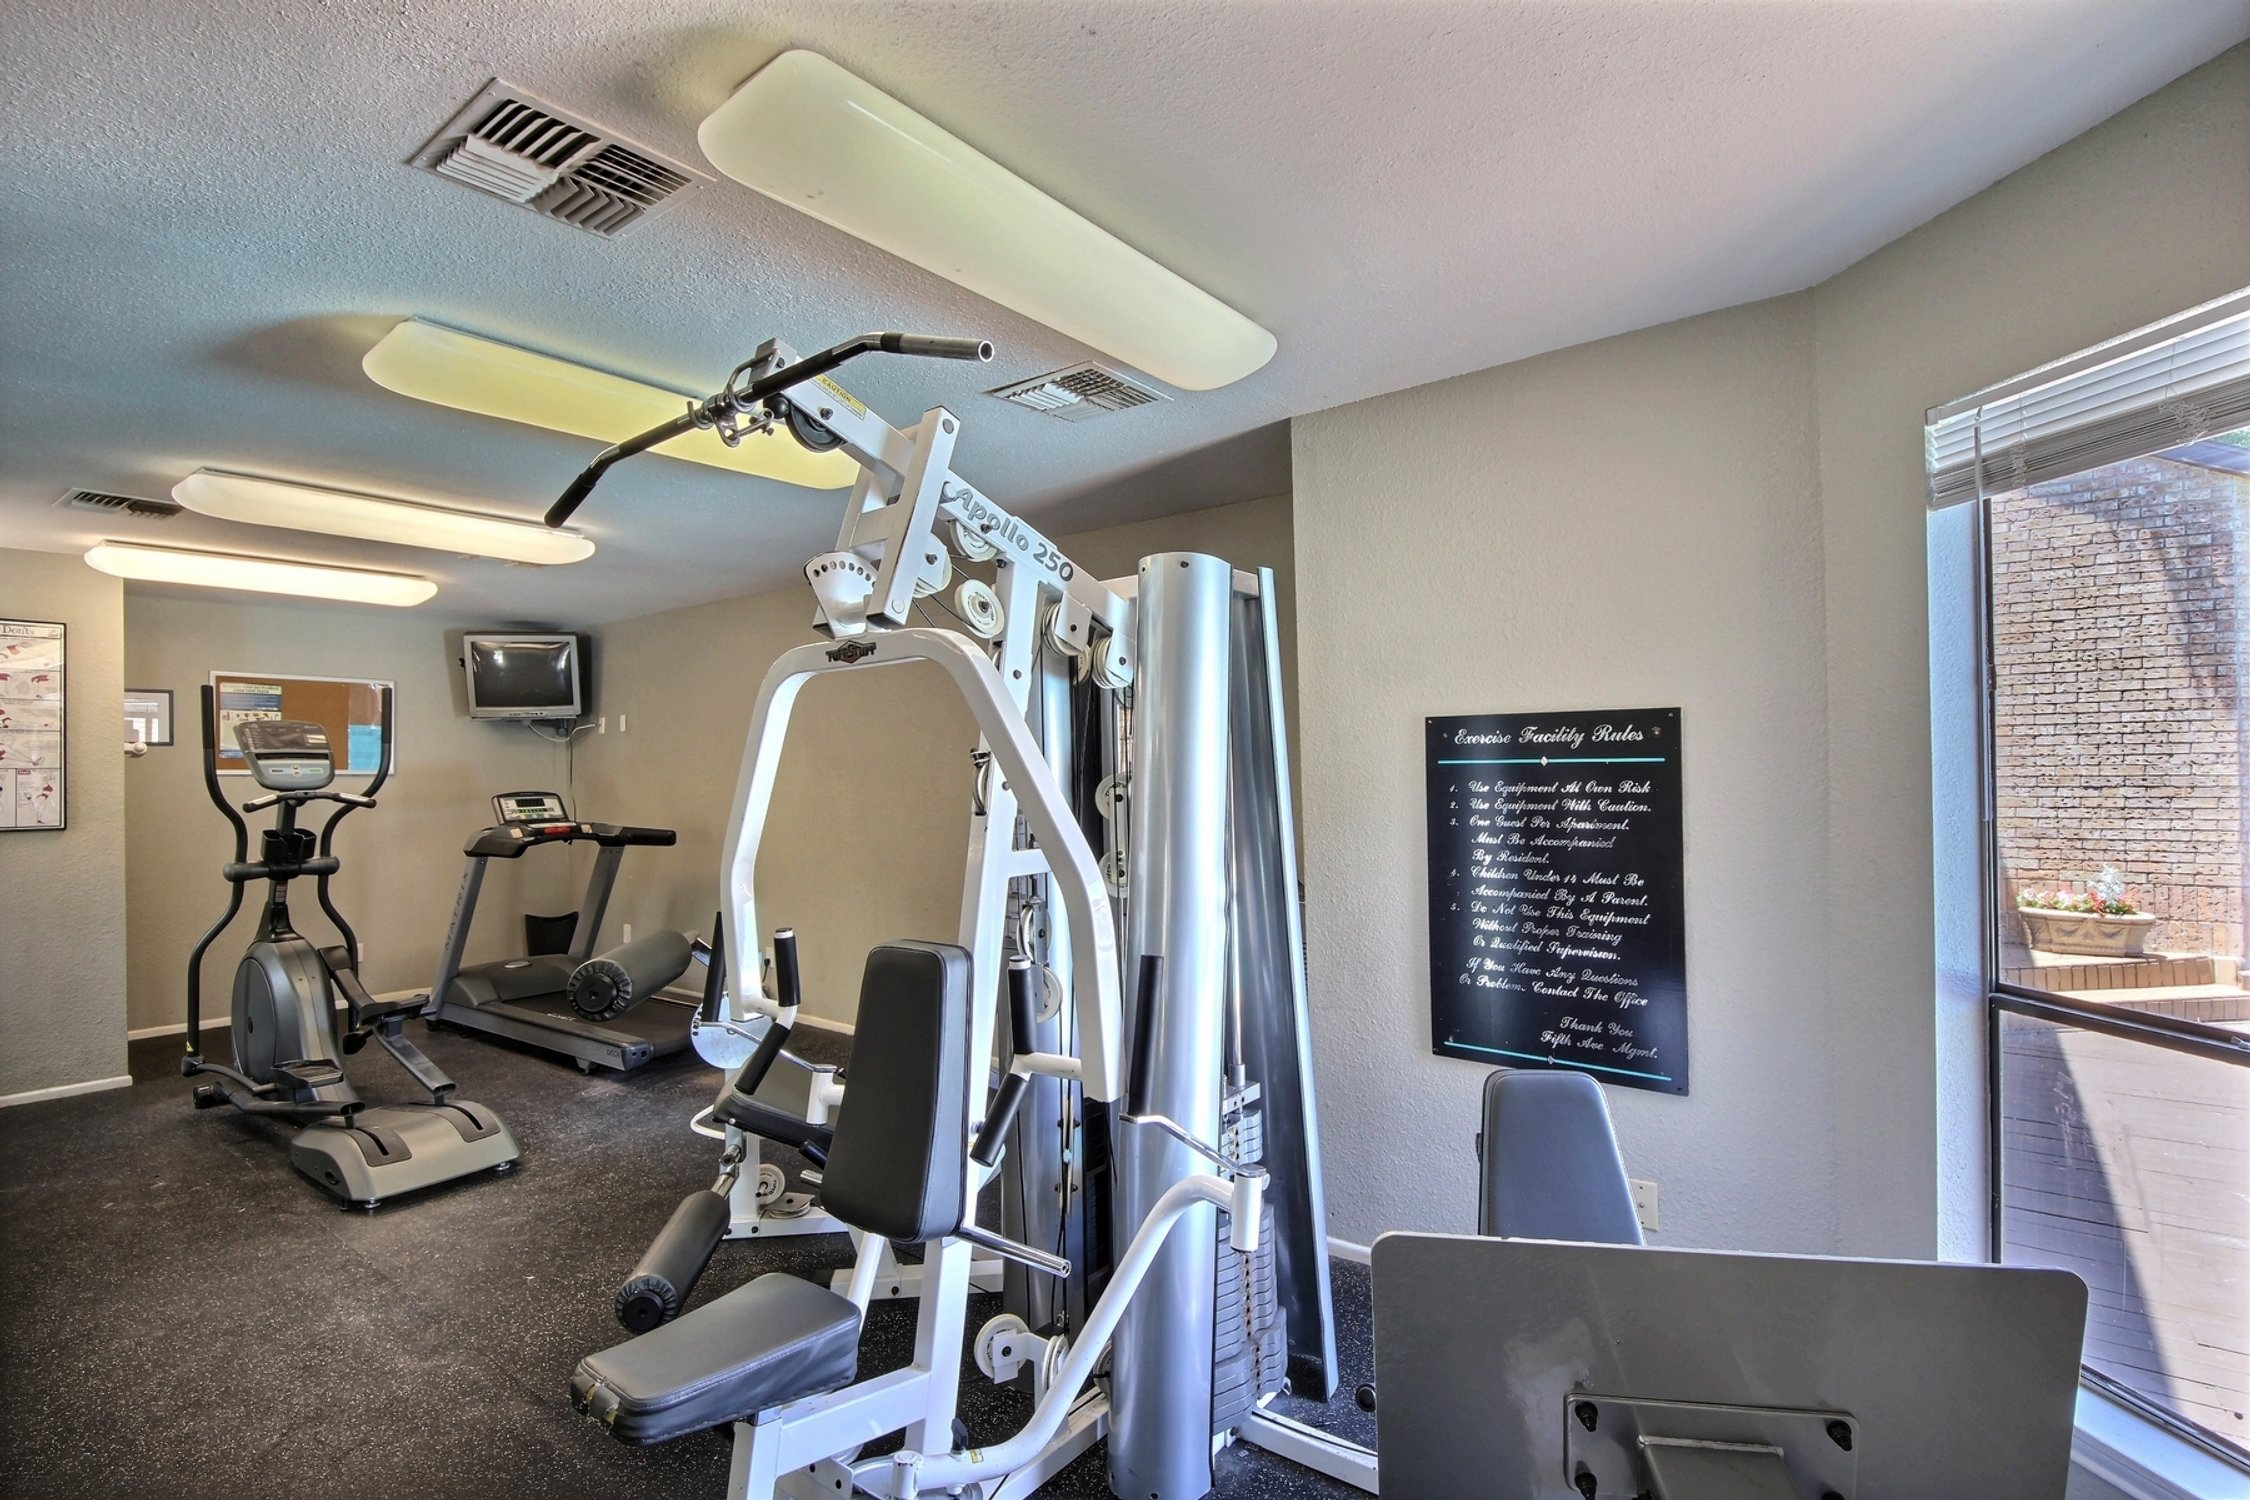 Why pay a gym membership when you have an on-site gym just steps away